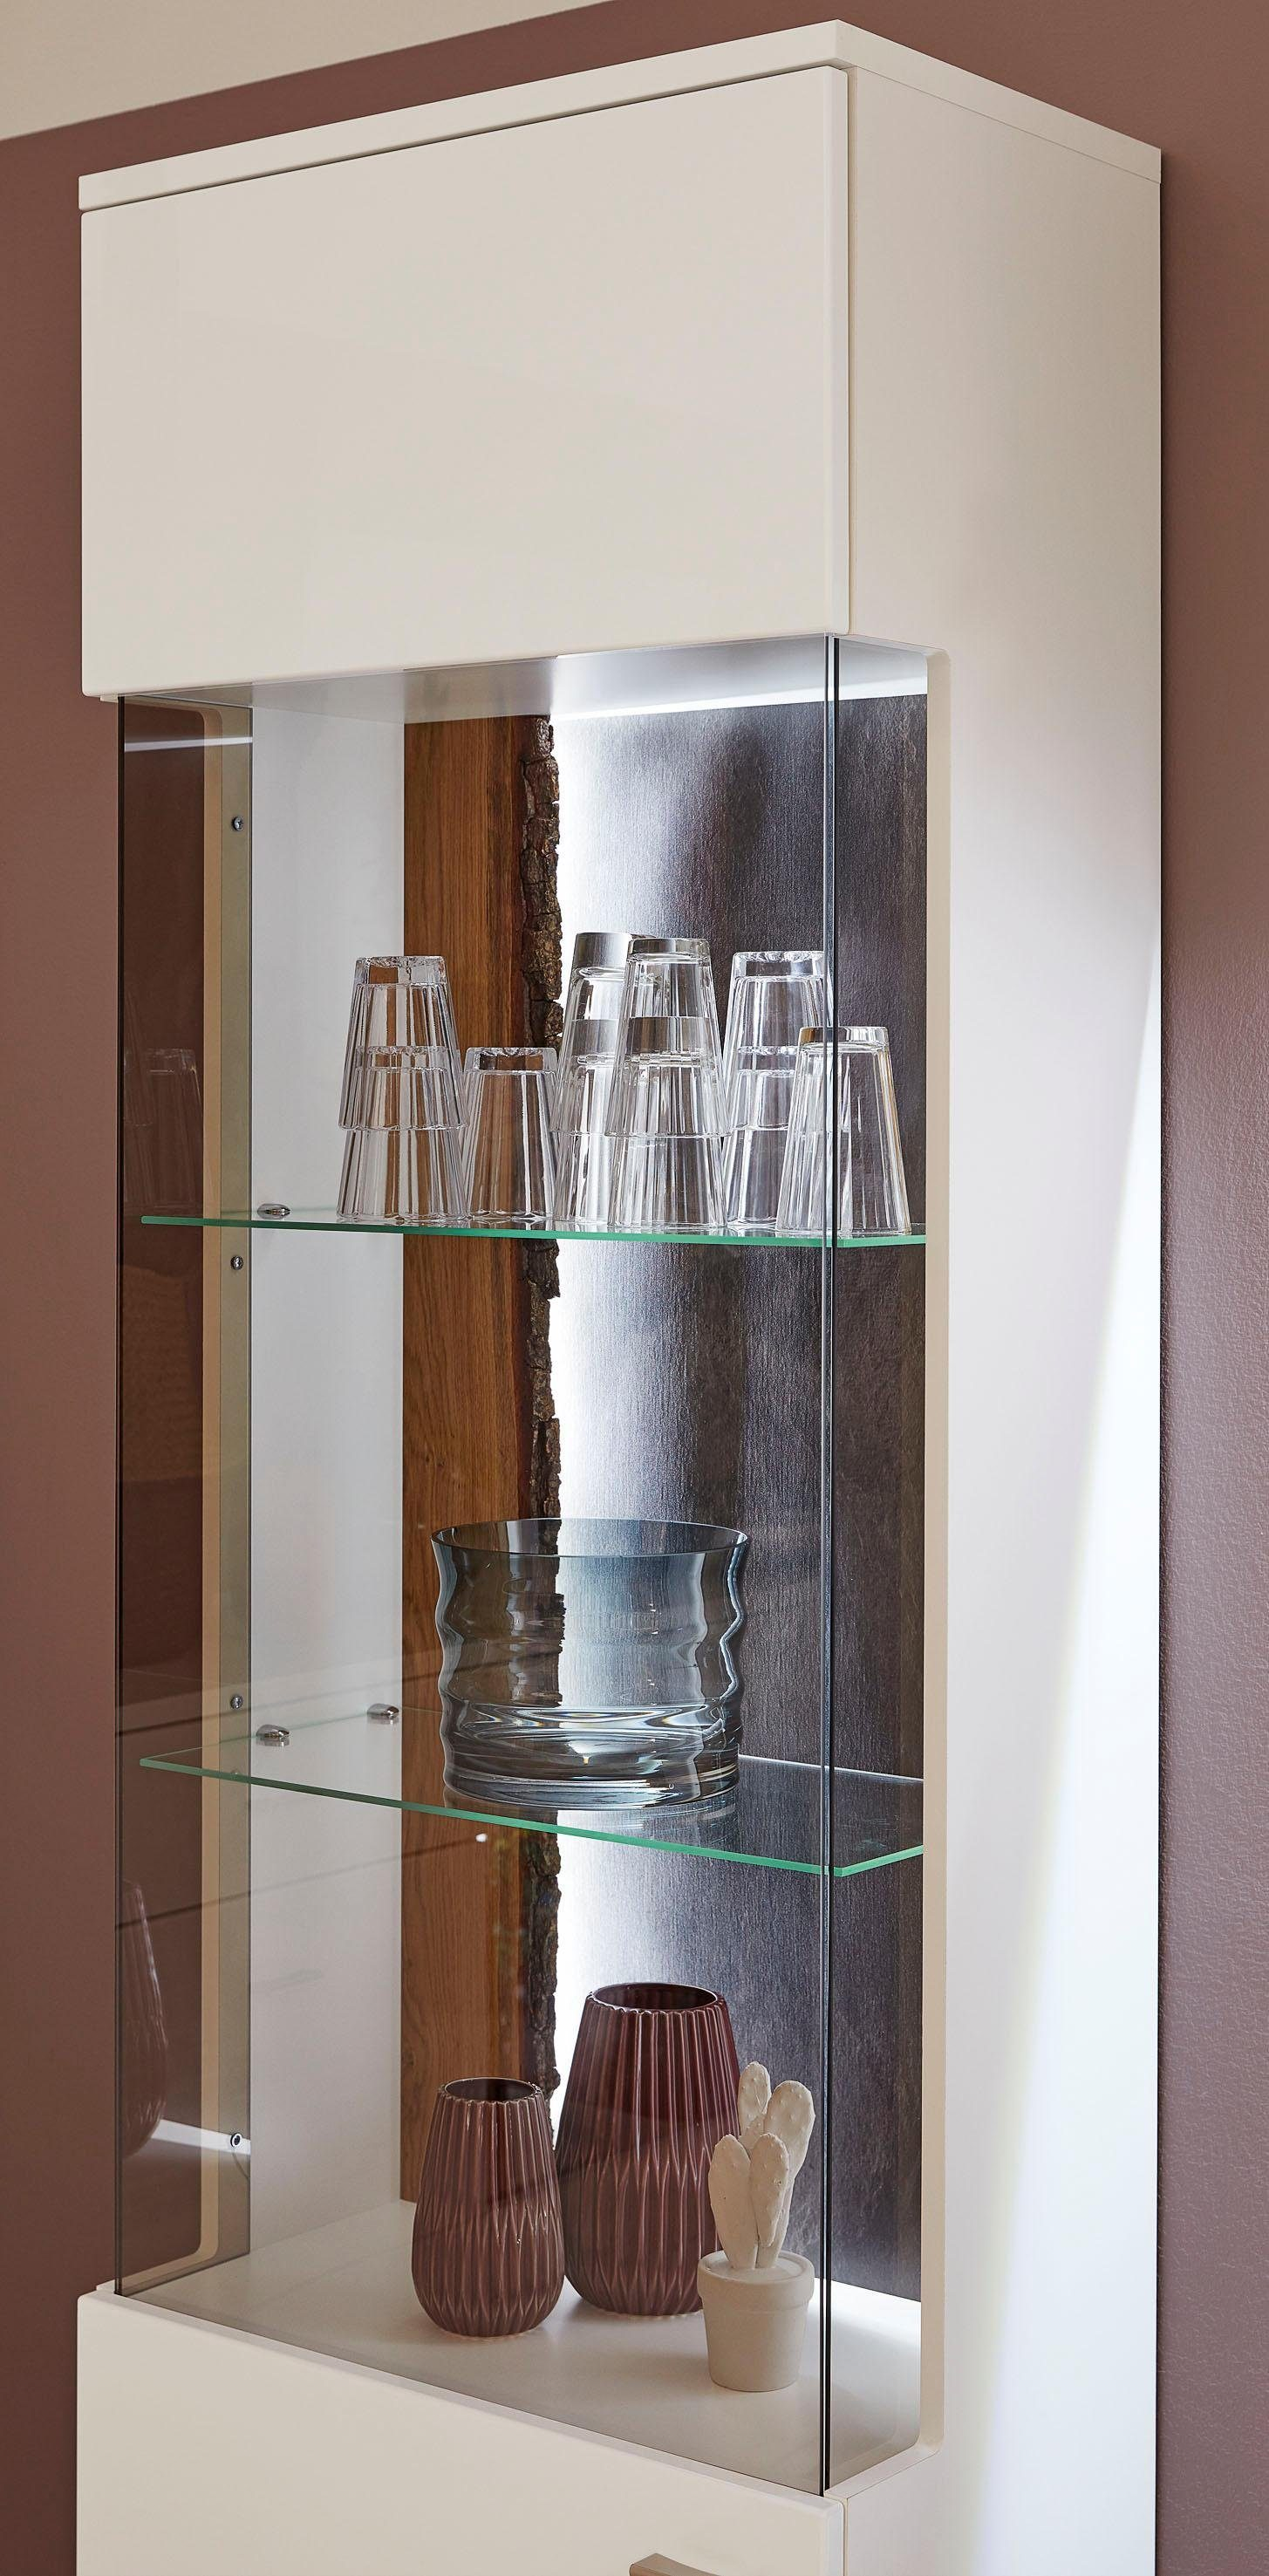 Musterring Wohnzimmer Set One By Musterring Vitrine »tacoma«, Höhe 207, 4 Cm